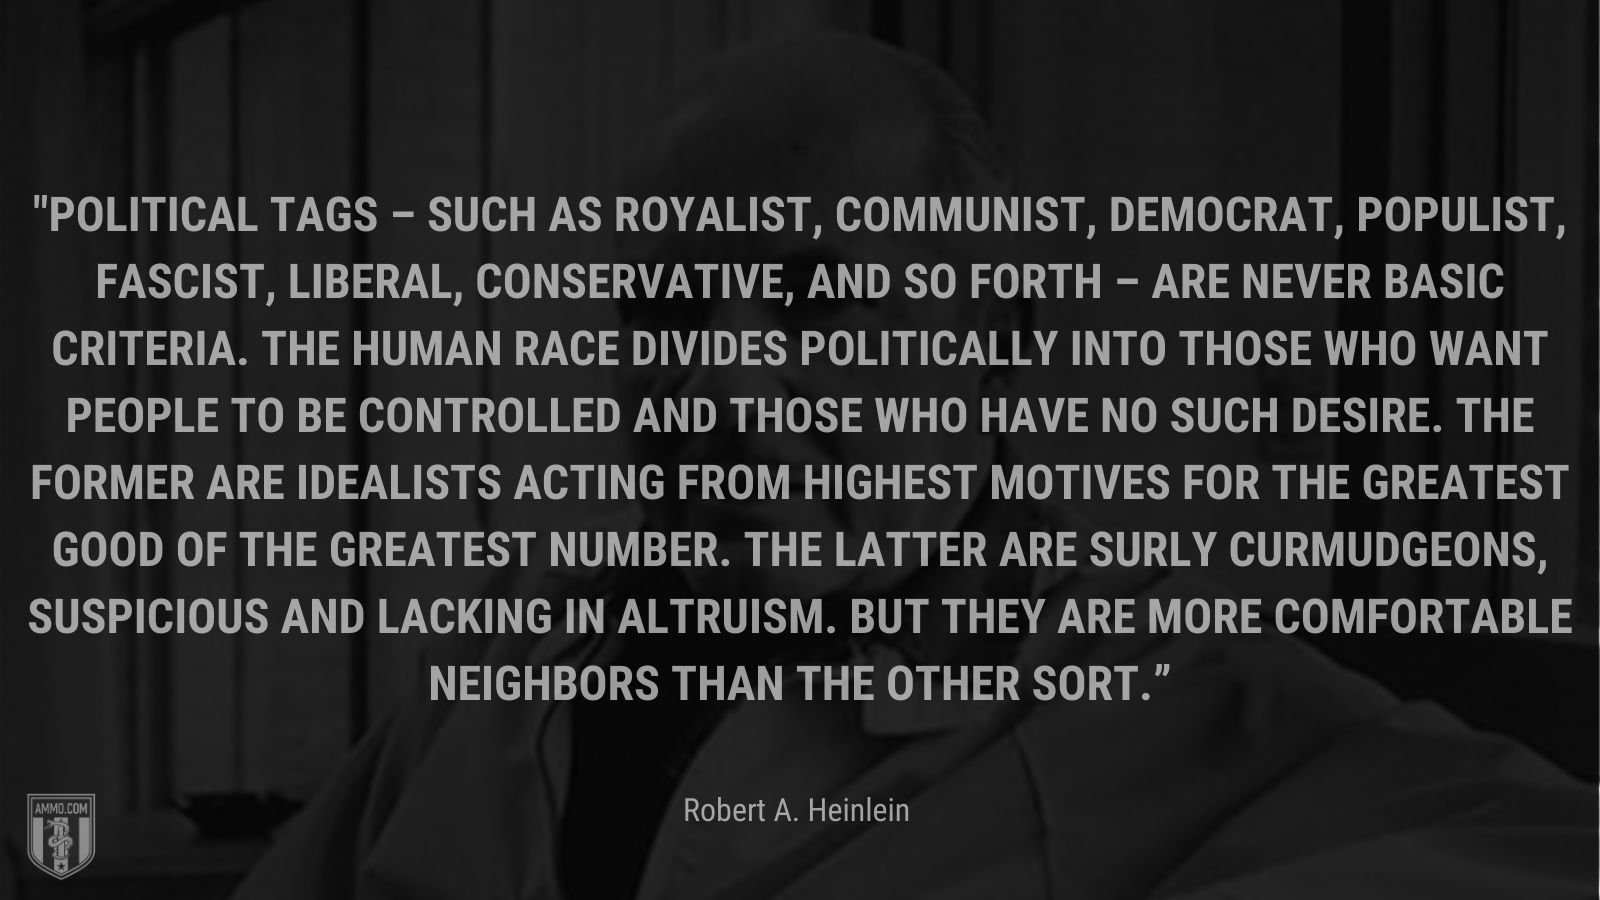 """""""Political tags – such as royalist, communist, democrat, populist, fascist, liberal, conservative, and so forth – are never basic criteria. The human race divides politically into those who want people to be controlled and those who have no such desire. The former are idealists acting from highest motives for the greatest good of the greatest number. The latter are surly curmudgeons, suspicious and lacking in altruism. But they are more comfortable neighbors than the other sort."""" - Robert A. Heinlein"""